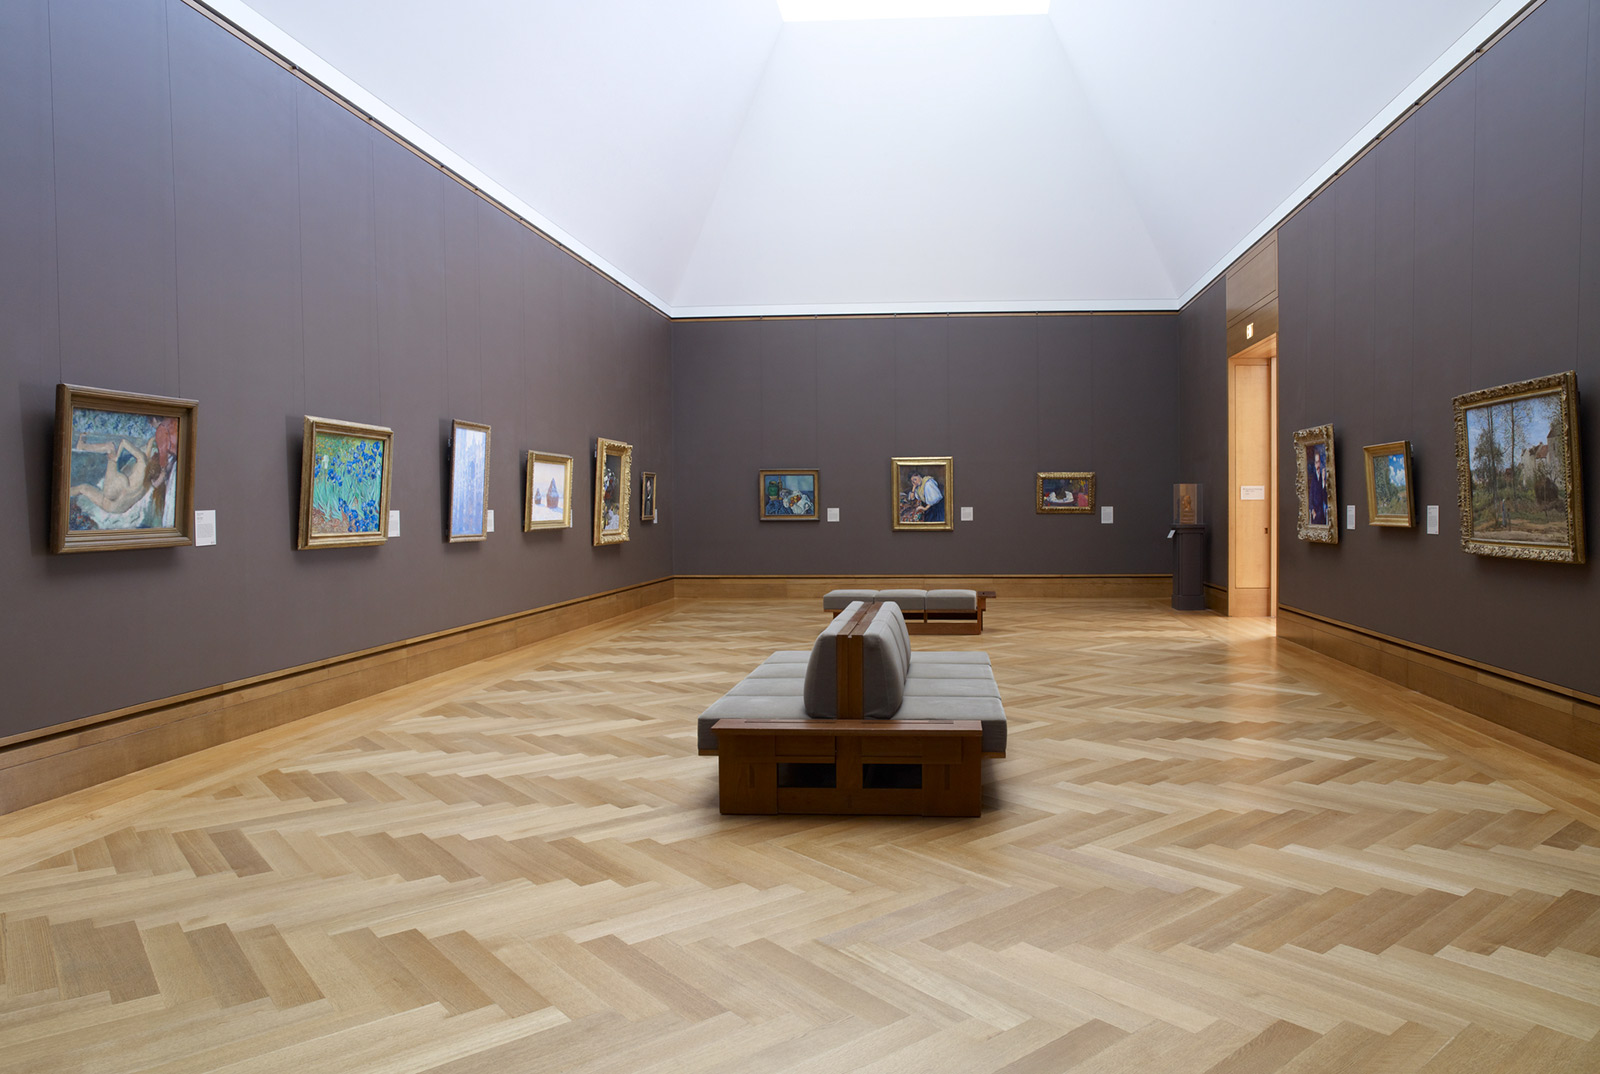 Wide-angle view of a museum gallery with mushroom-colored walls, a wood floor, and paintings in gold frames